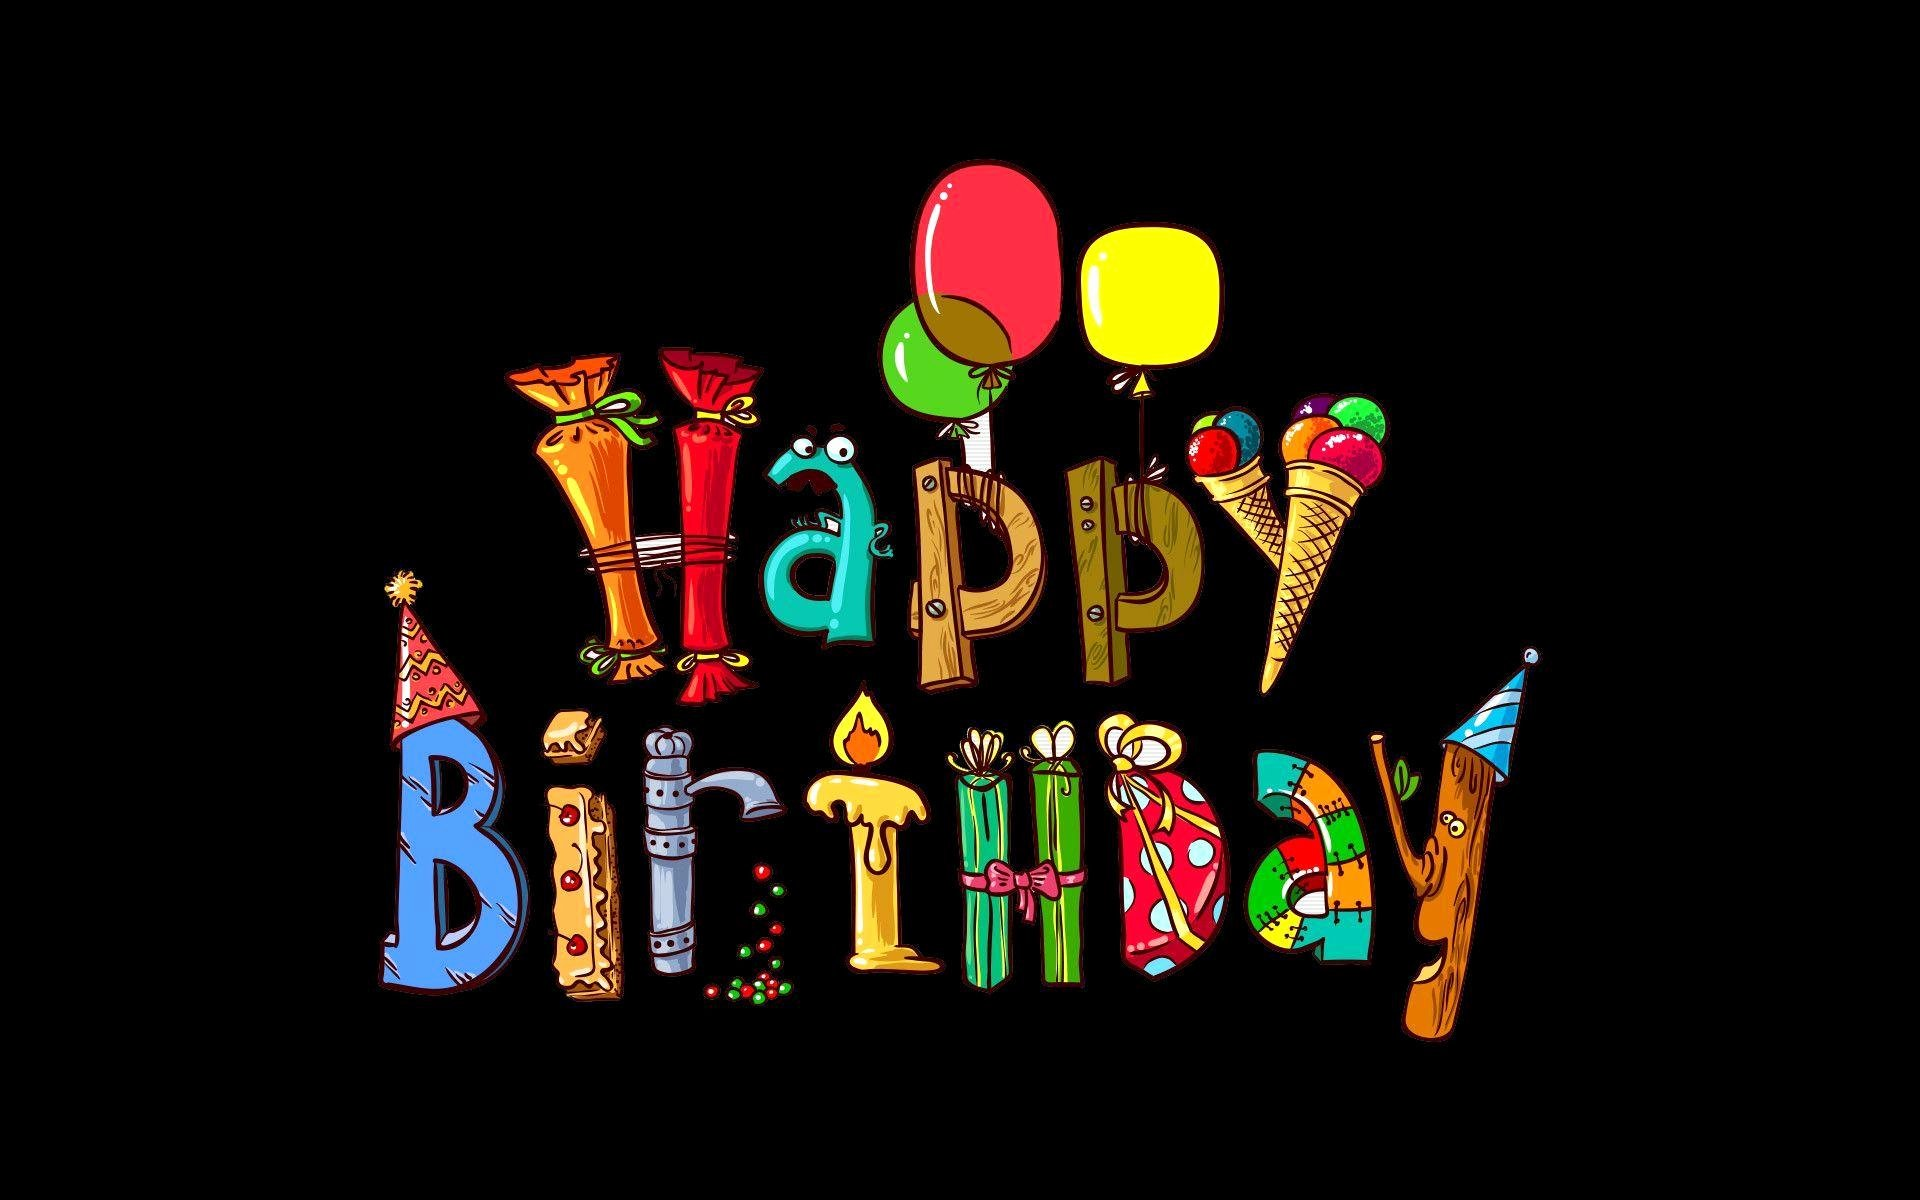 Happy Bday Wallpapers Free Inspirational Happy Birthday Wallpapers Wallpaper Cave